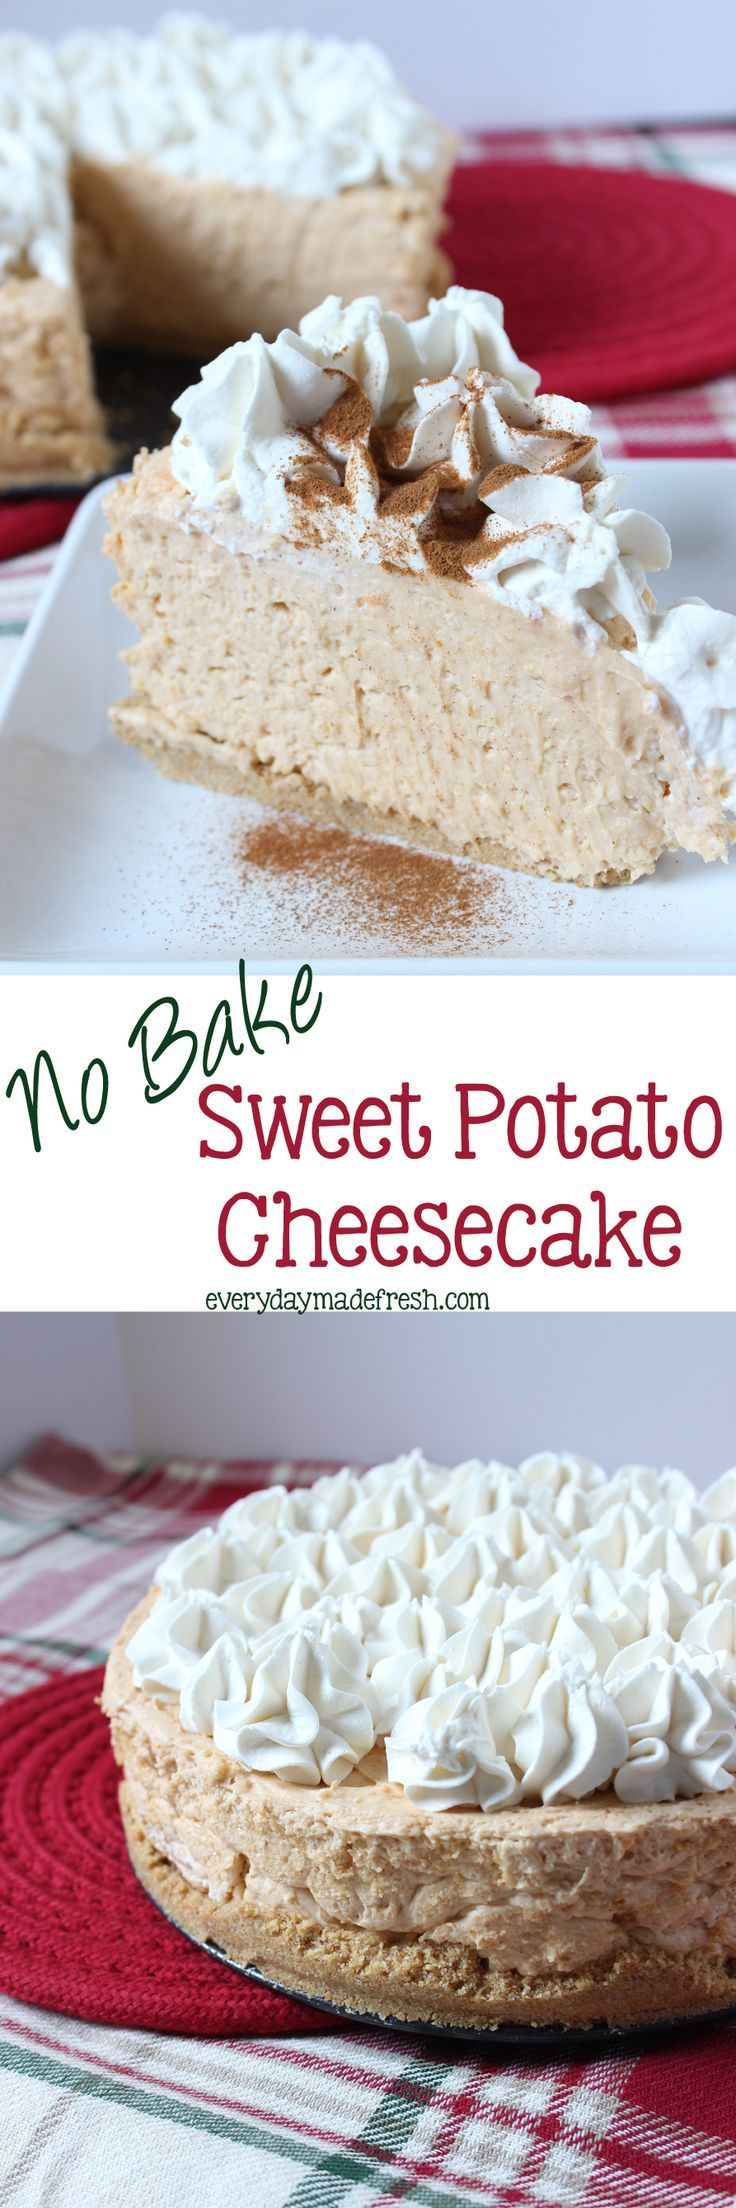 No Bake Sweet Potato Cheesecake - This Cheesecake is so easy, creamy, and decadent! You'd never know it was a no bake cheesecake. @biglots #BigLotsHoliday #ad | EverydayMadeFresh.com http://www.everydaymadefresh.com/no-bake-sweet-potato-cheesecake/